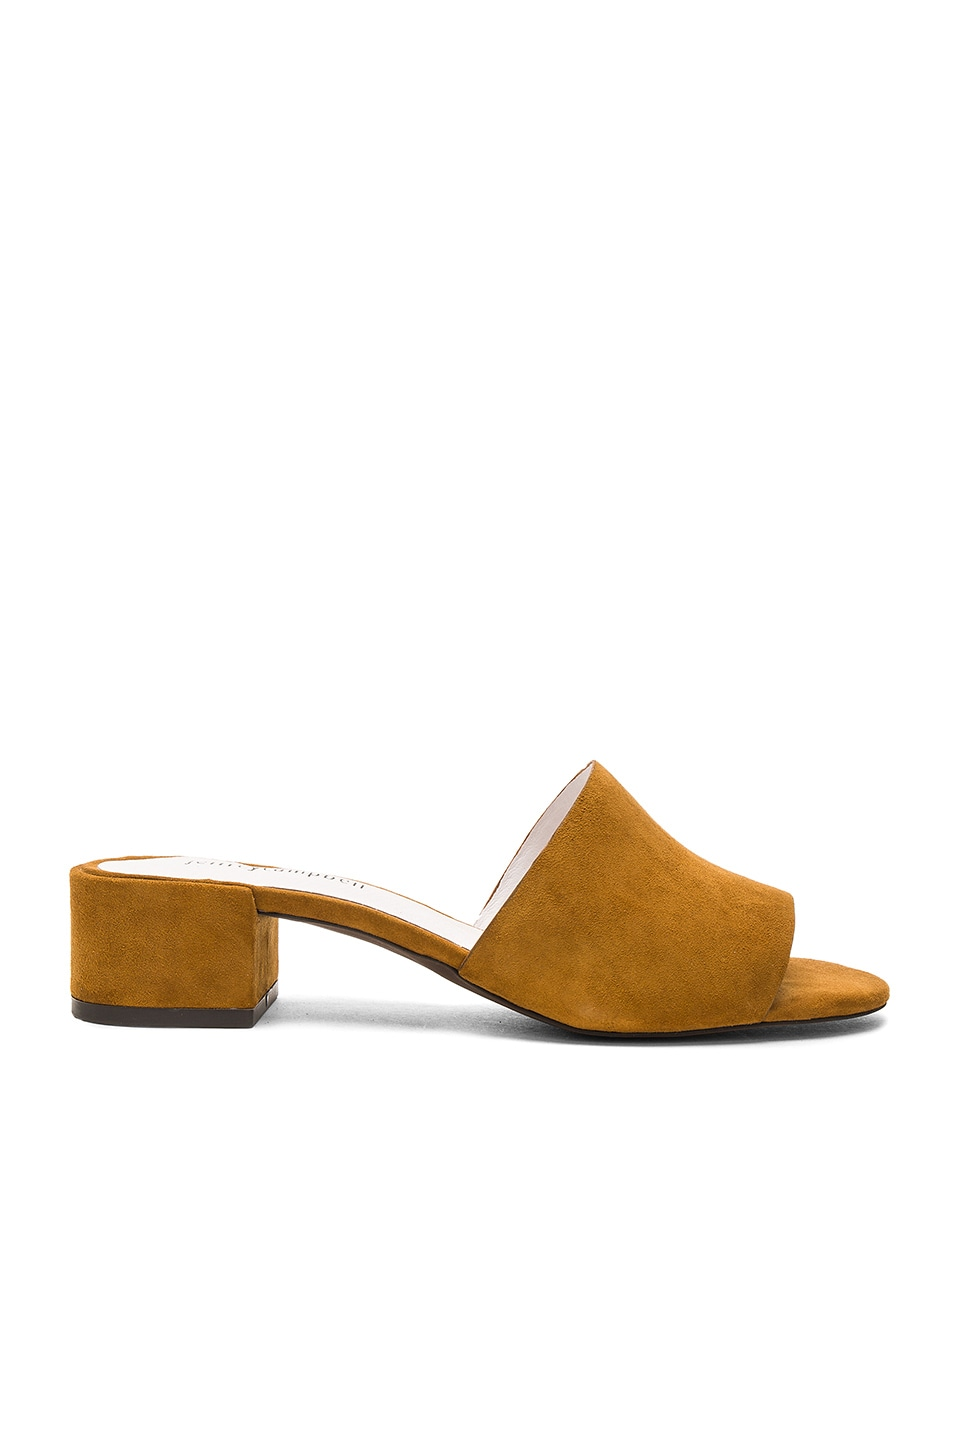 Jeffrey Campbell Beaton Heel in Yellow Suede